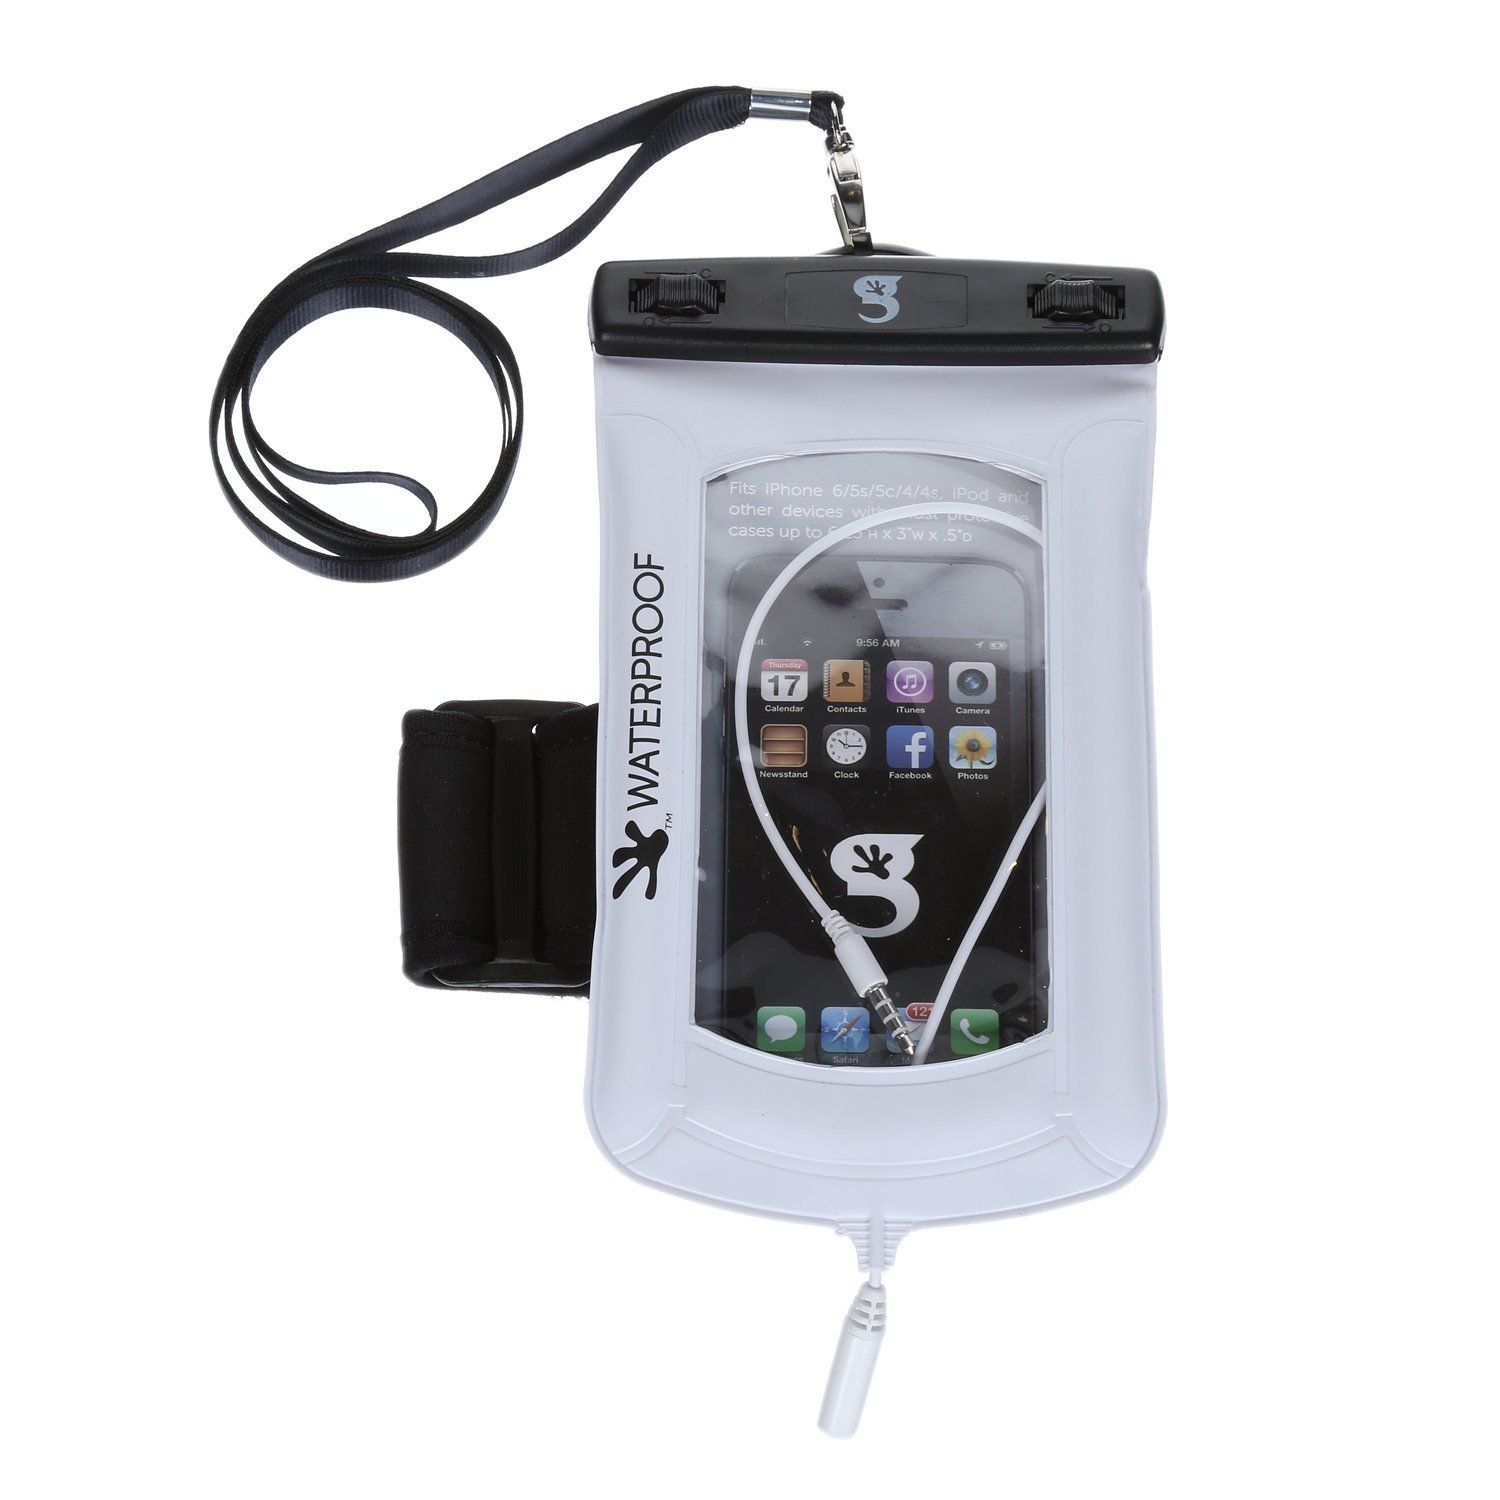 geckobrands Float Phone Dry Bag with Audio Cord & Arm Band- White by geckobrands (Image #1)